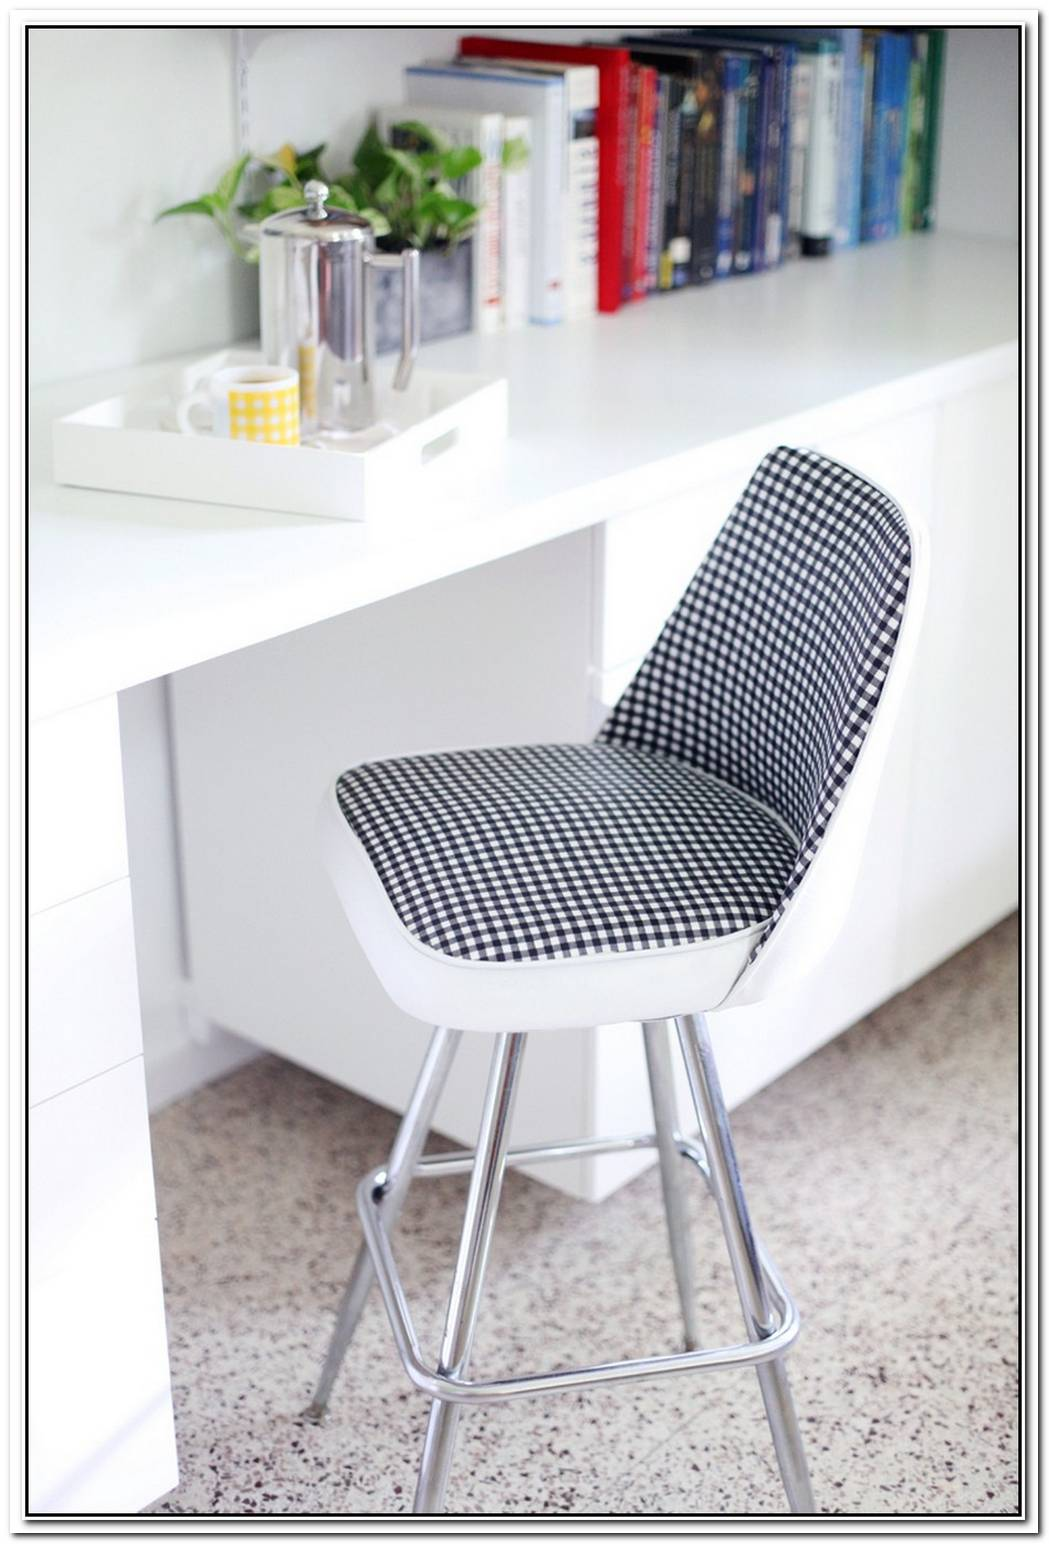 Stylish Ways To Revive An Old Stool Using A Small Budget